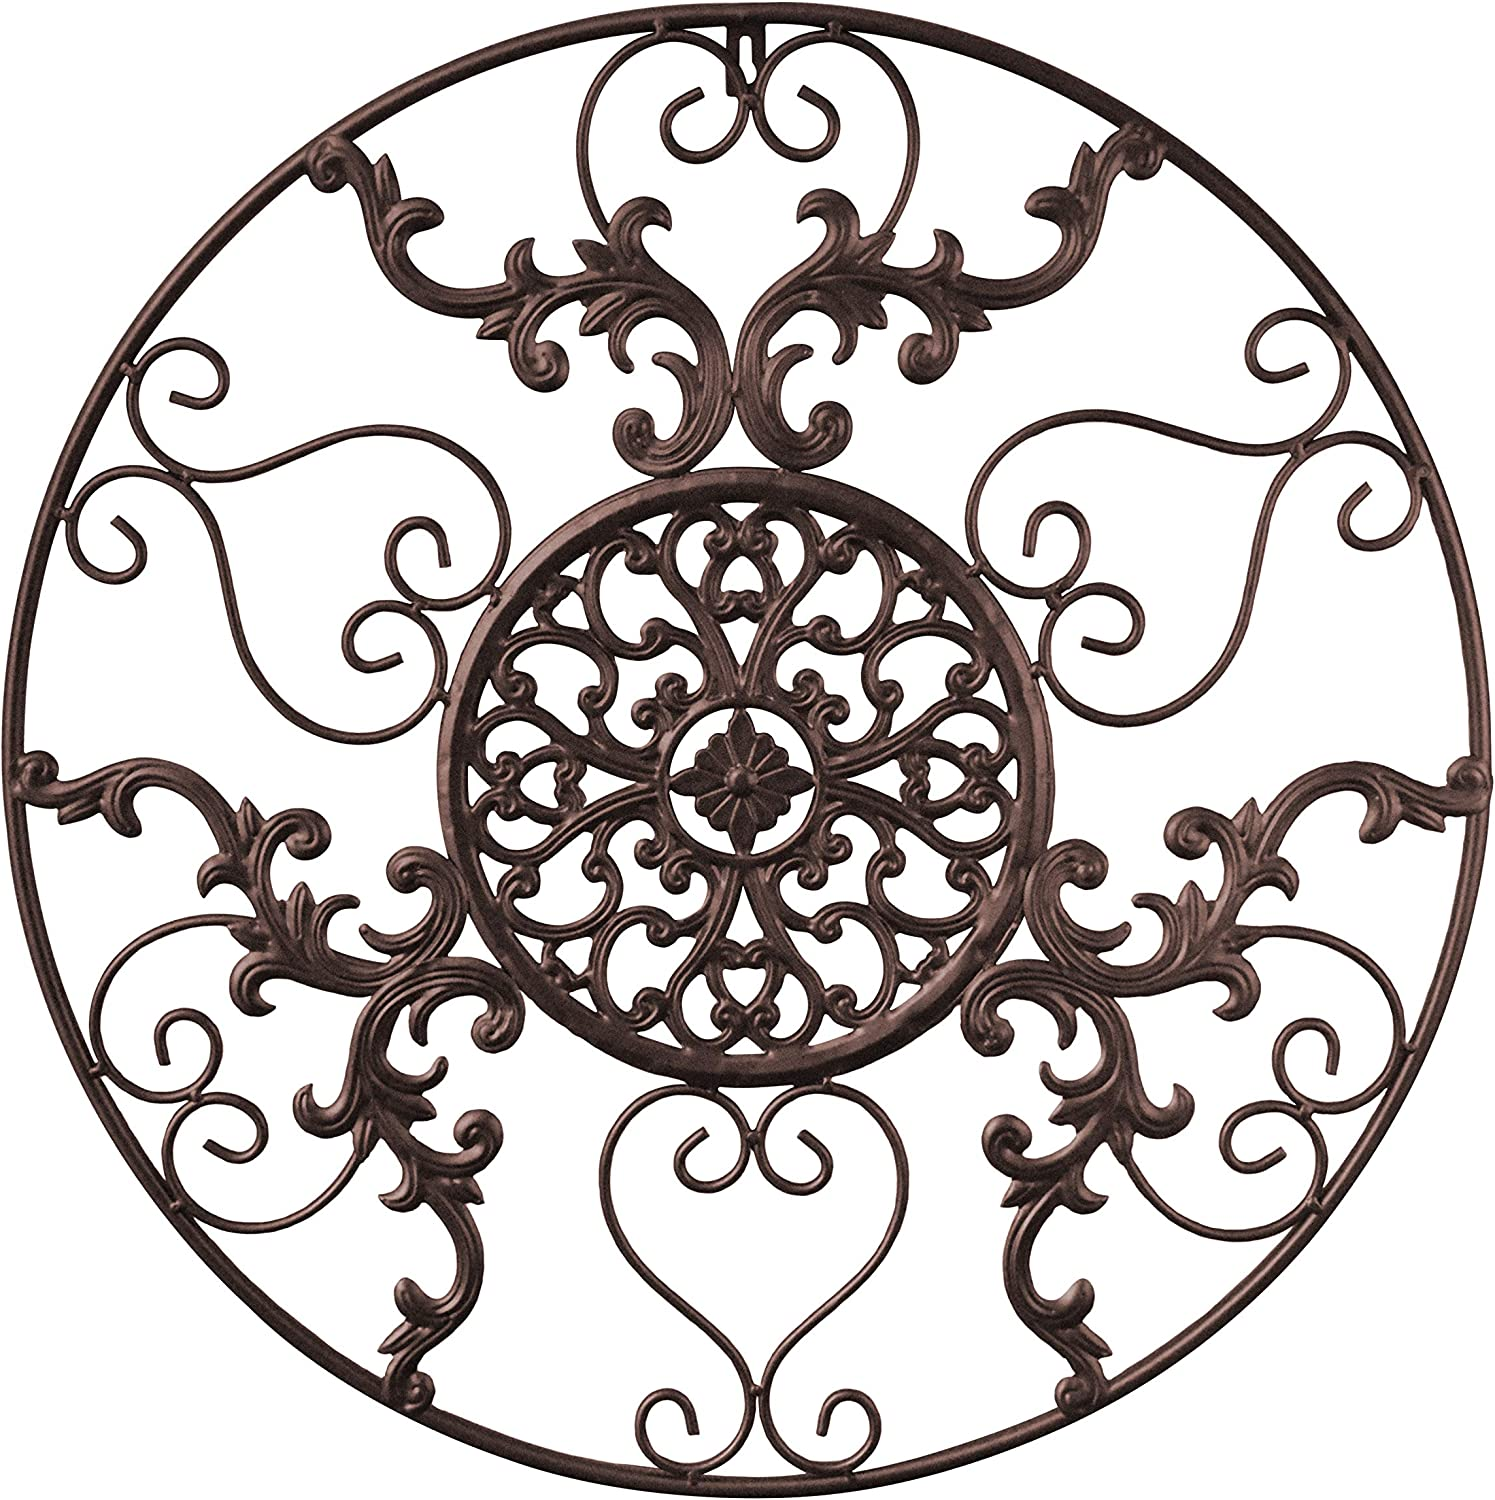 GB HOME COLLECTION gbHome GH-6775BRN Metal Wall Decor Decorative Victorian Style Hanging Art Steel Decor Circular Medallion Design Espresso Brown Circle 23.5 x 23.5 Inches